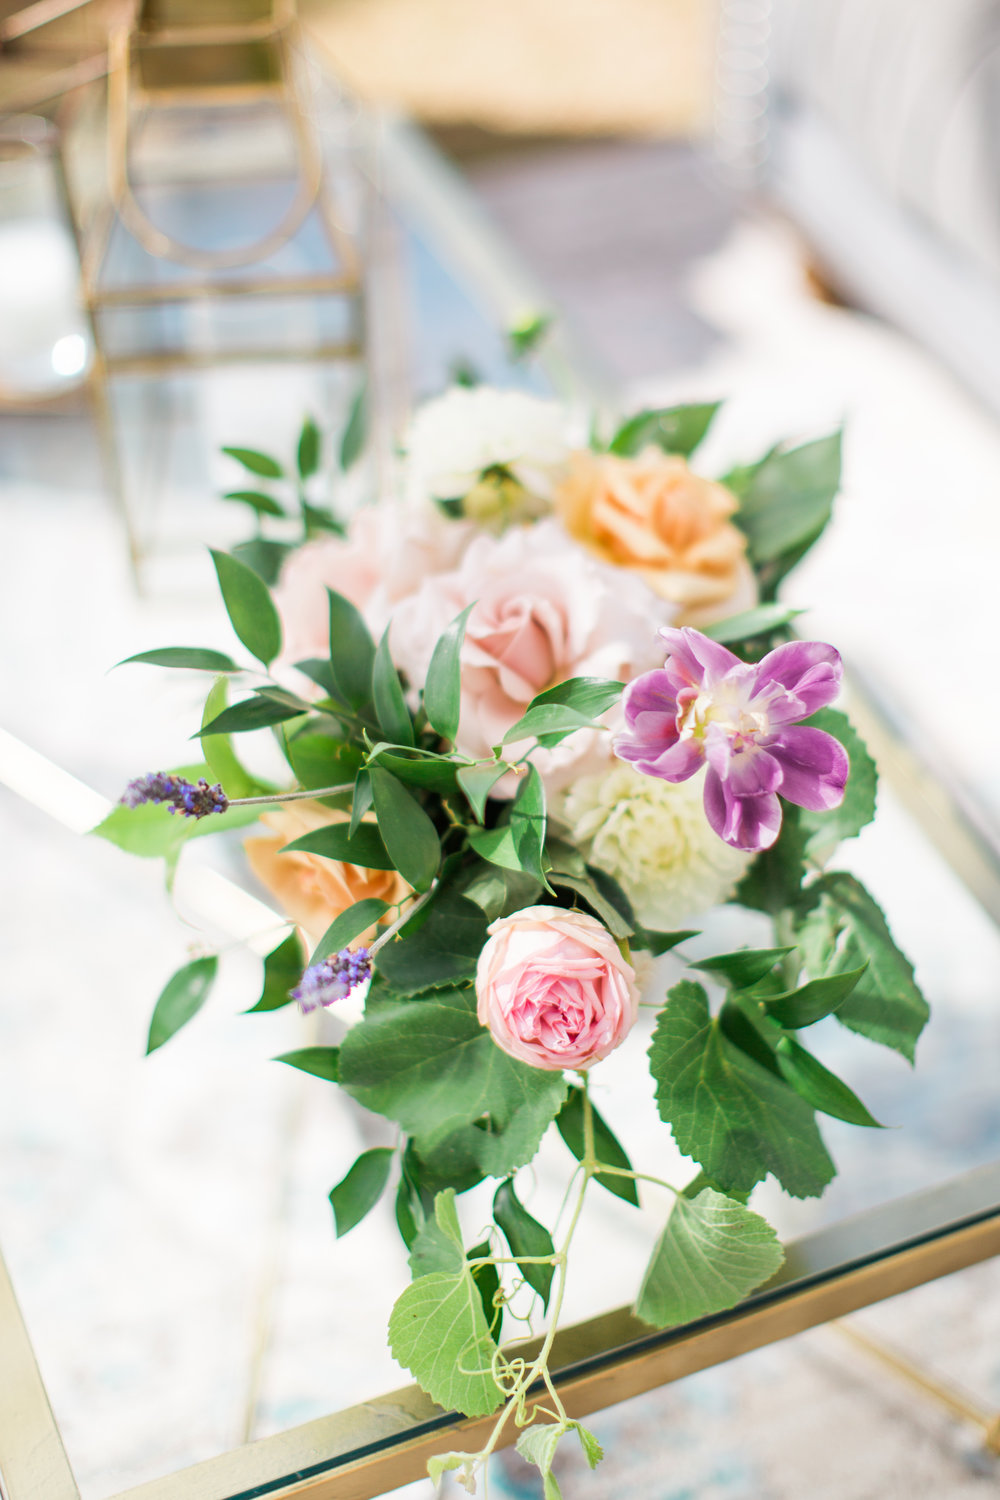 Blooms-breesa-lee-luxury-florist-aga-jones-tres-chic-affairs-san-diego-wedding-classic-coast-catering-33).jpg